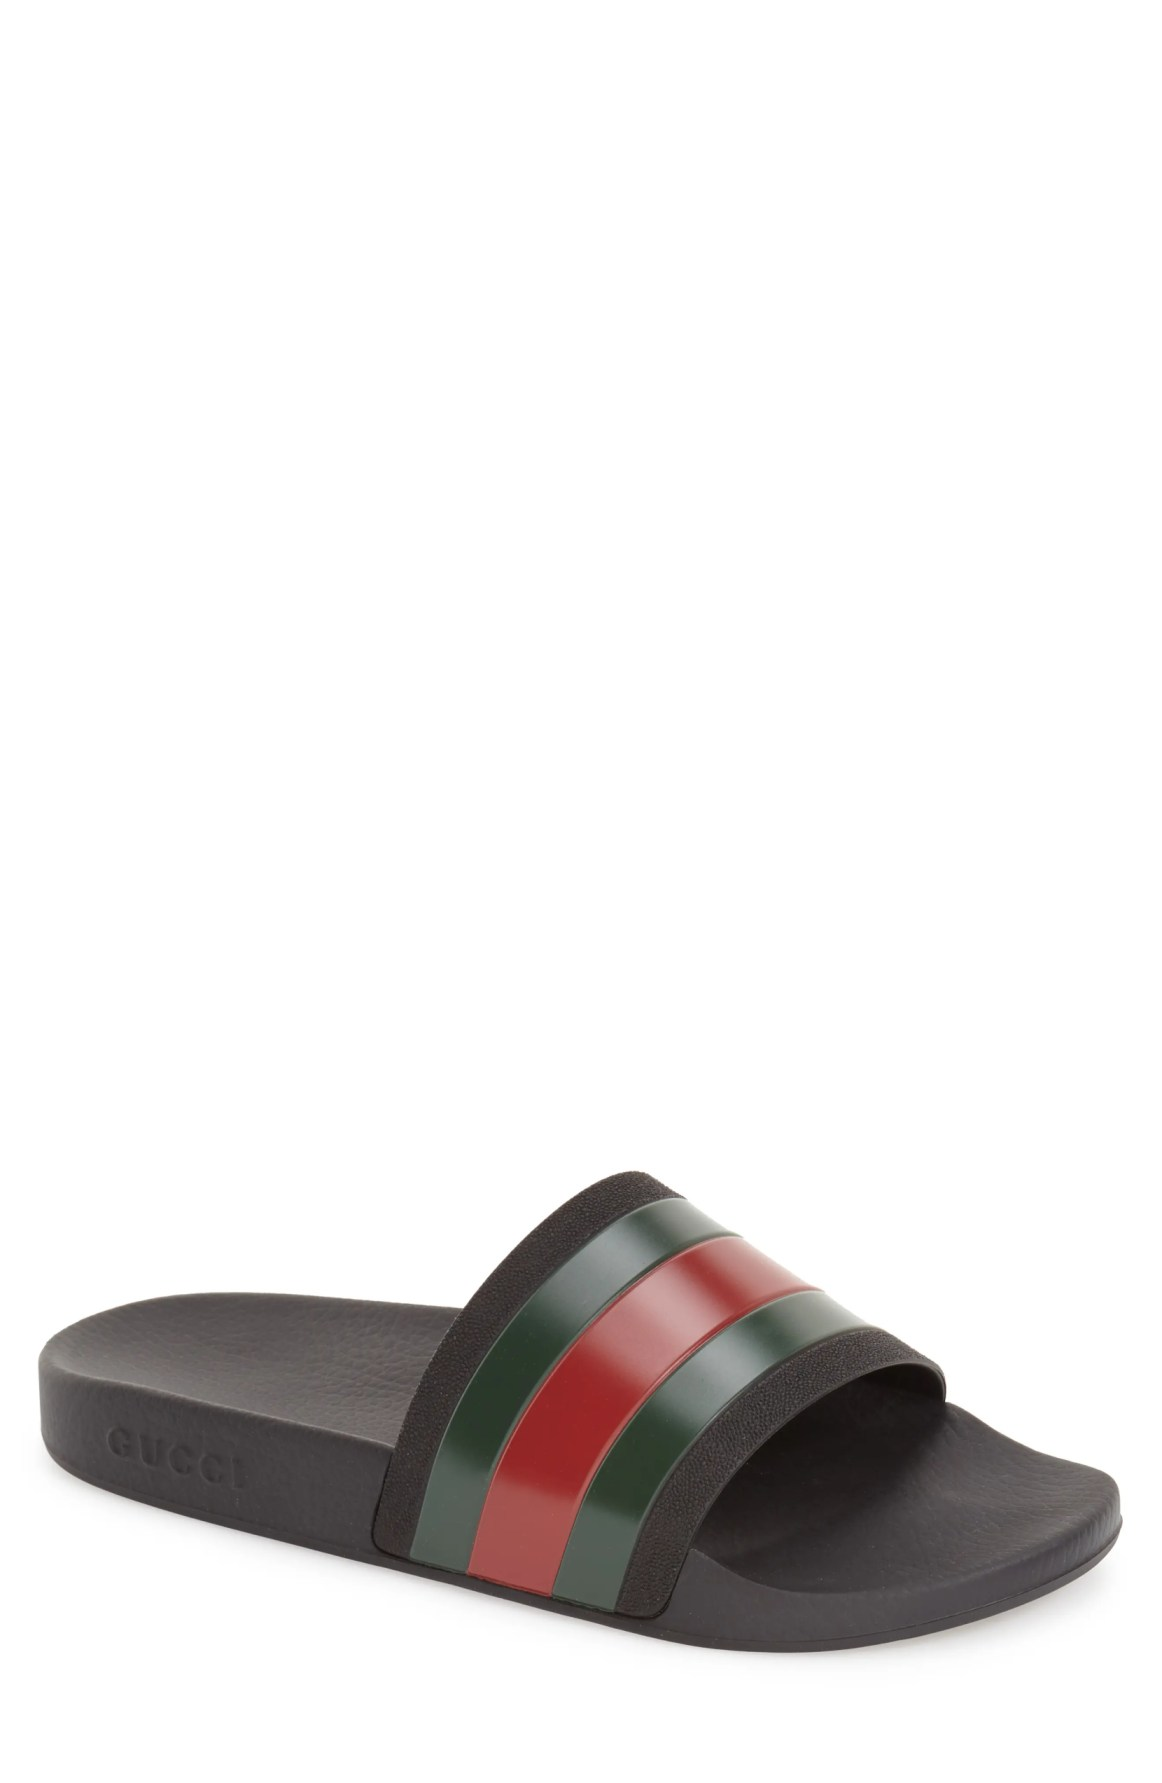 ae5fb0a0b Gucci Slides Garden | Gardening: Flower and Vegetables